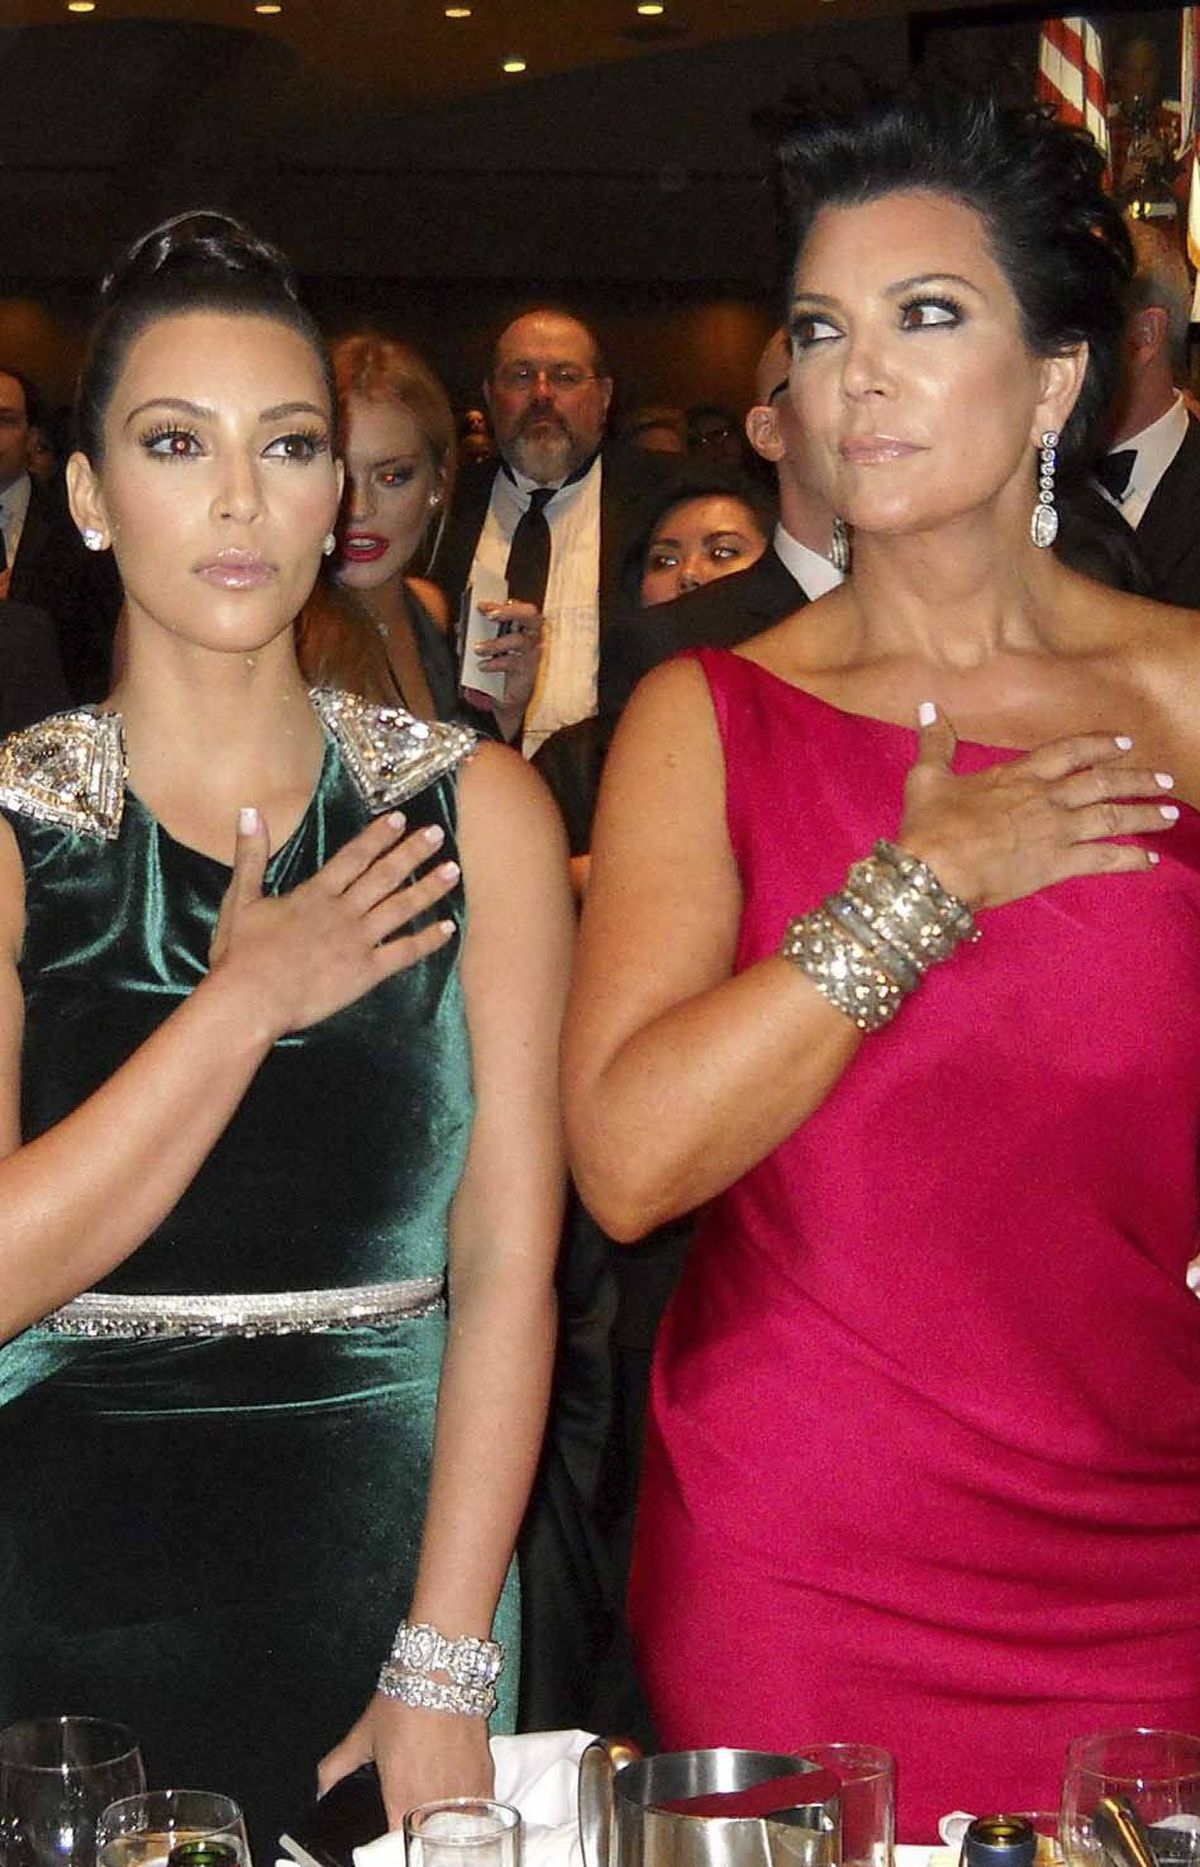 Kim Kardashian and her mother Kris Jenner, moved by the singing of the national anthem during the White House Correspondents' dinner in Washington, D.C., on Saturday, each put a hand to their massive hearts as they think of the tremendous opportunities and freedoms their great nation has given all Americans.